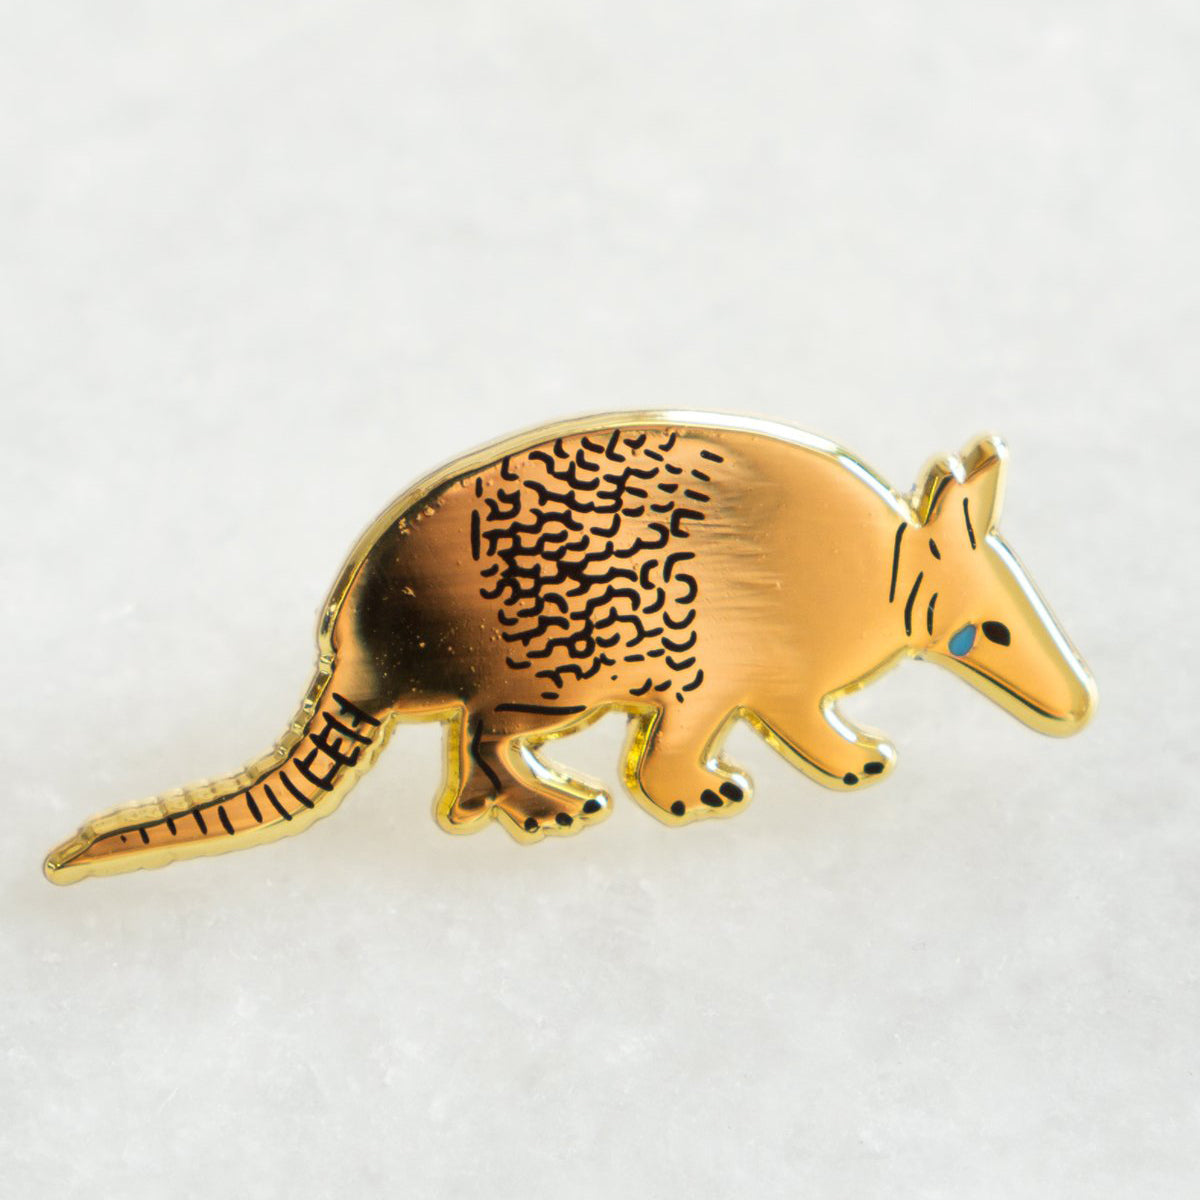 Sad Armadillo Pin